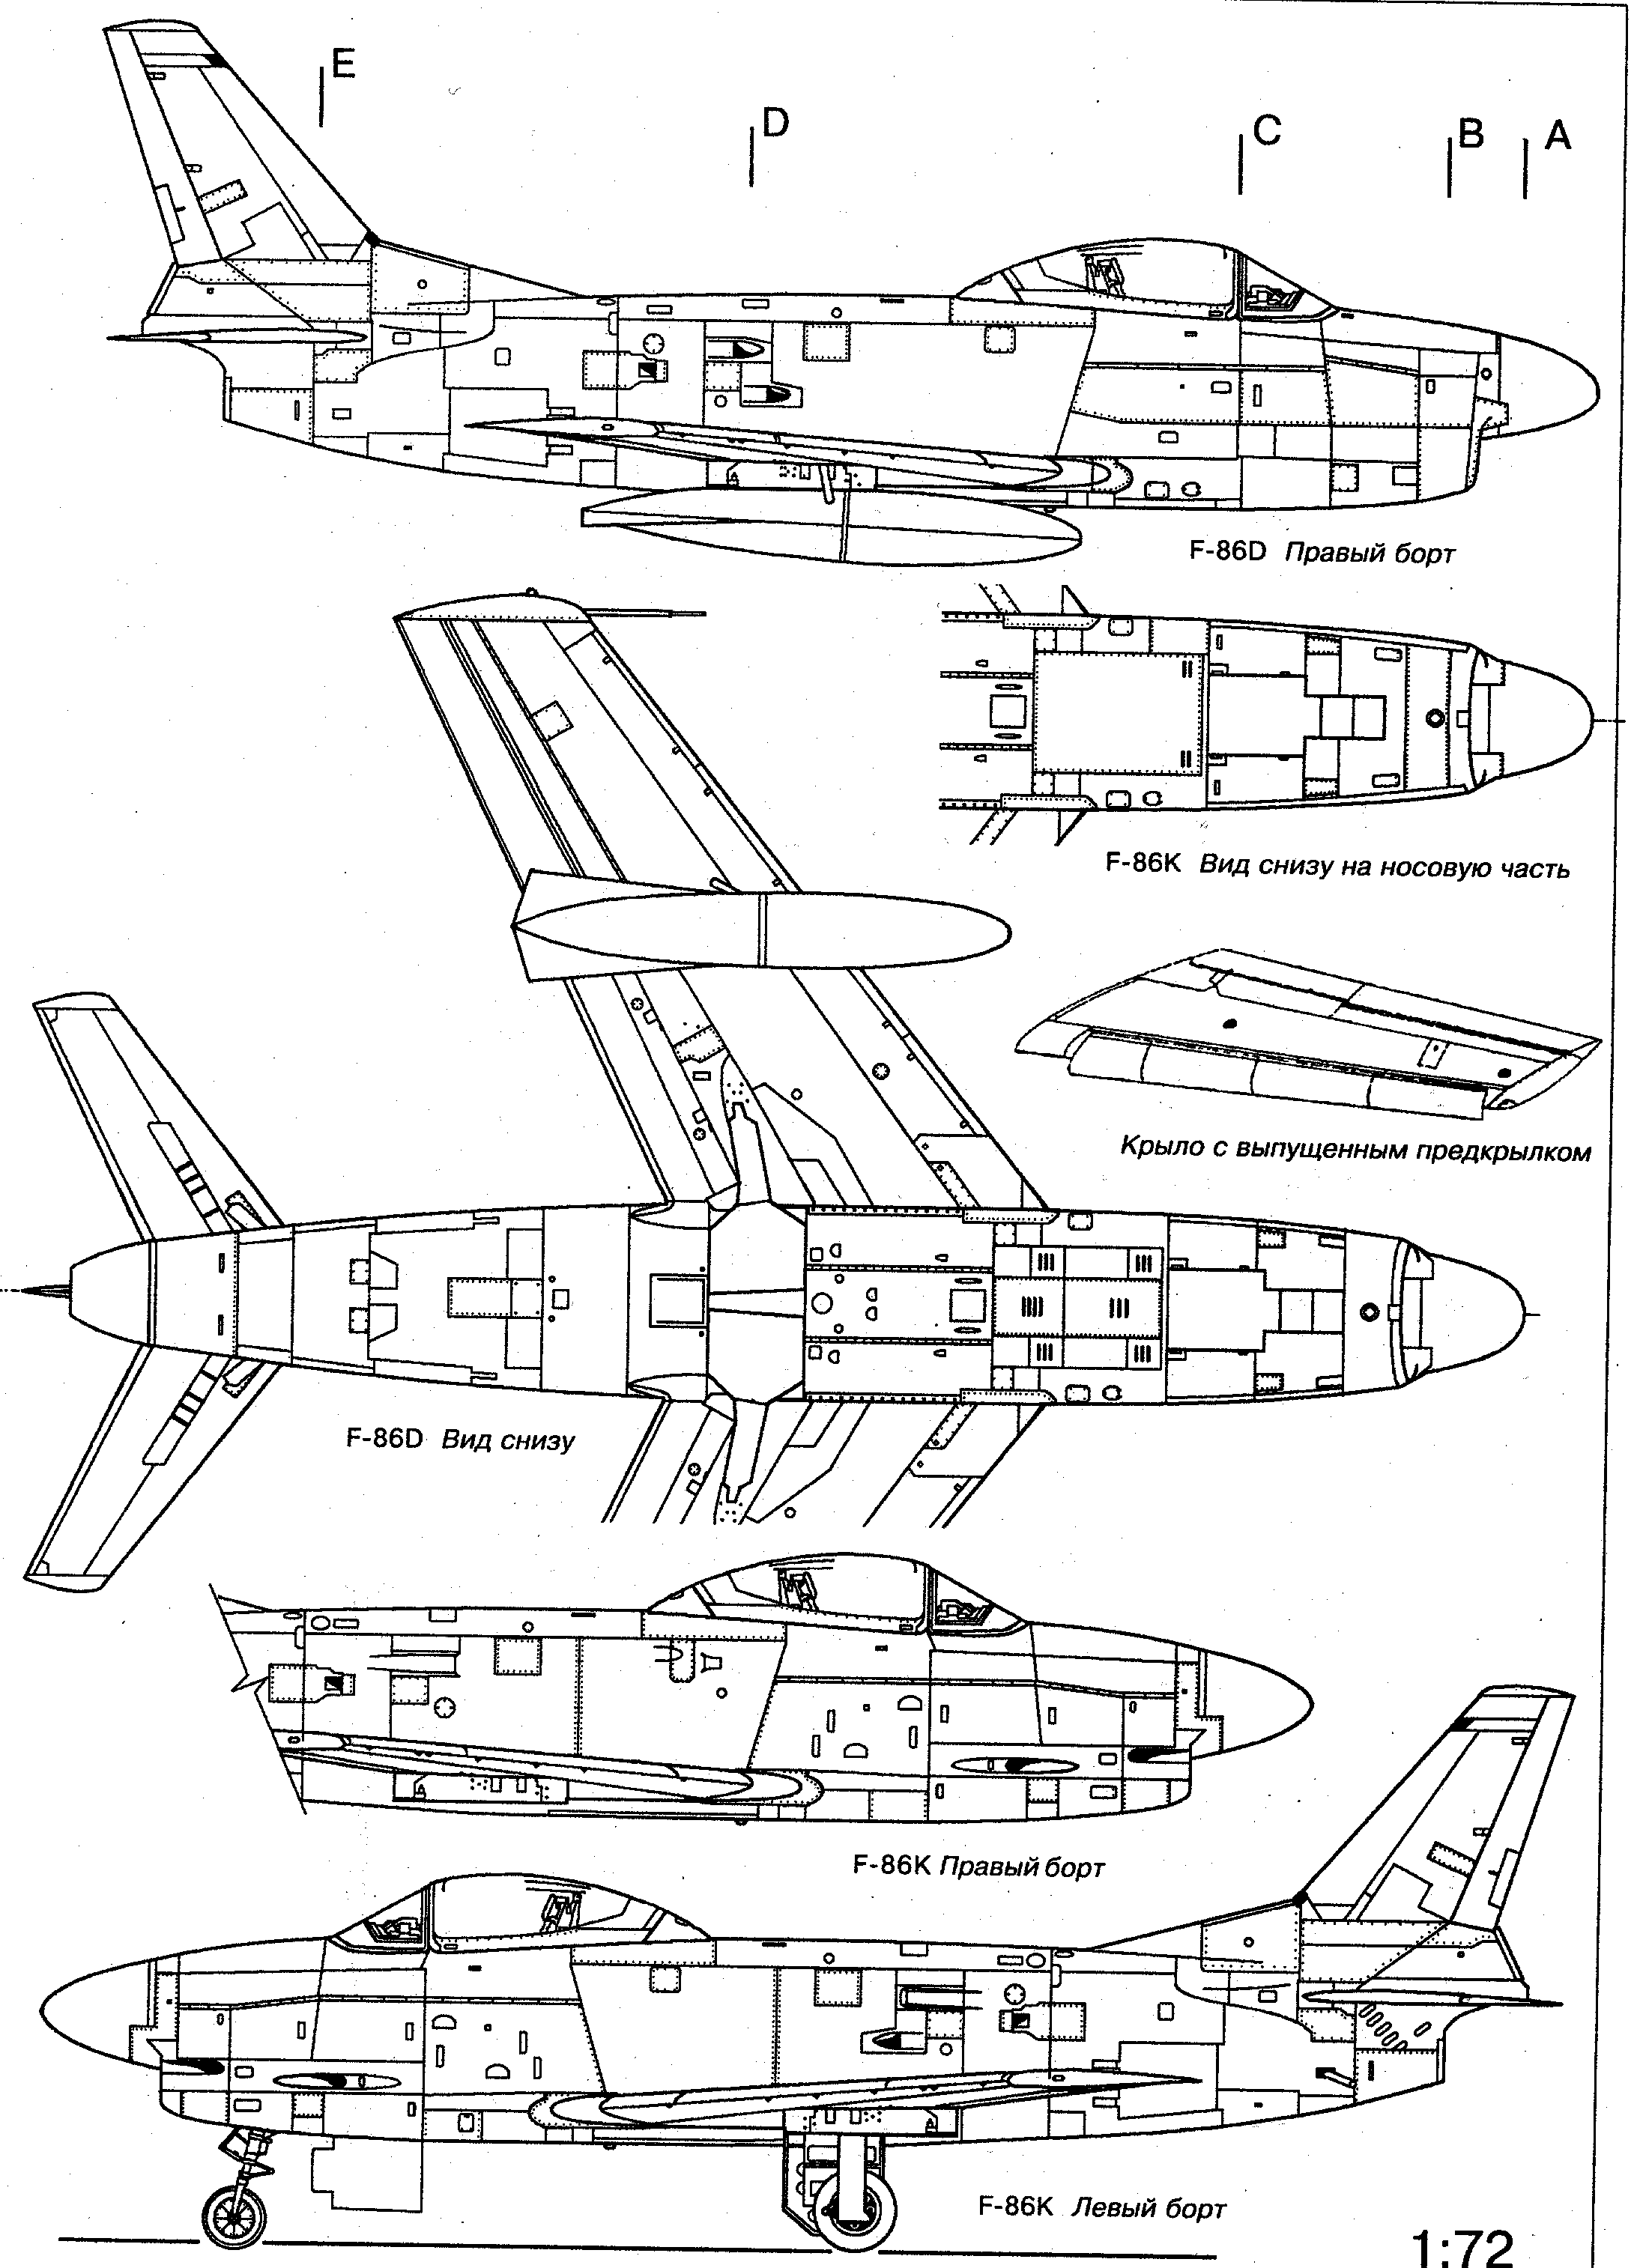 F-86 Sabre blueprint